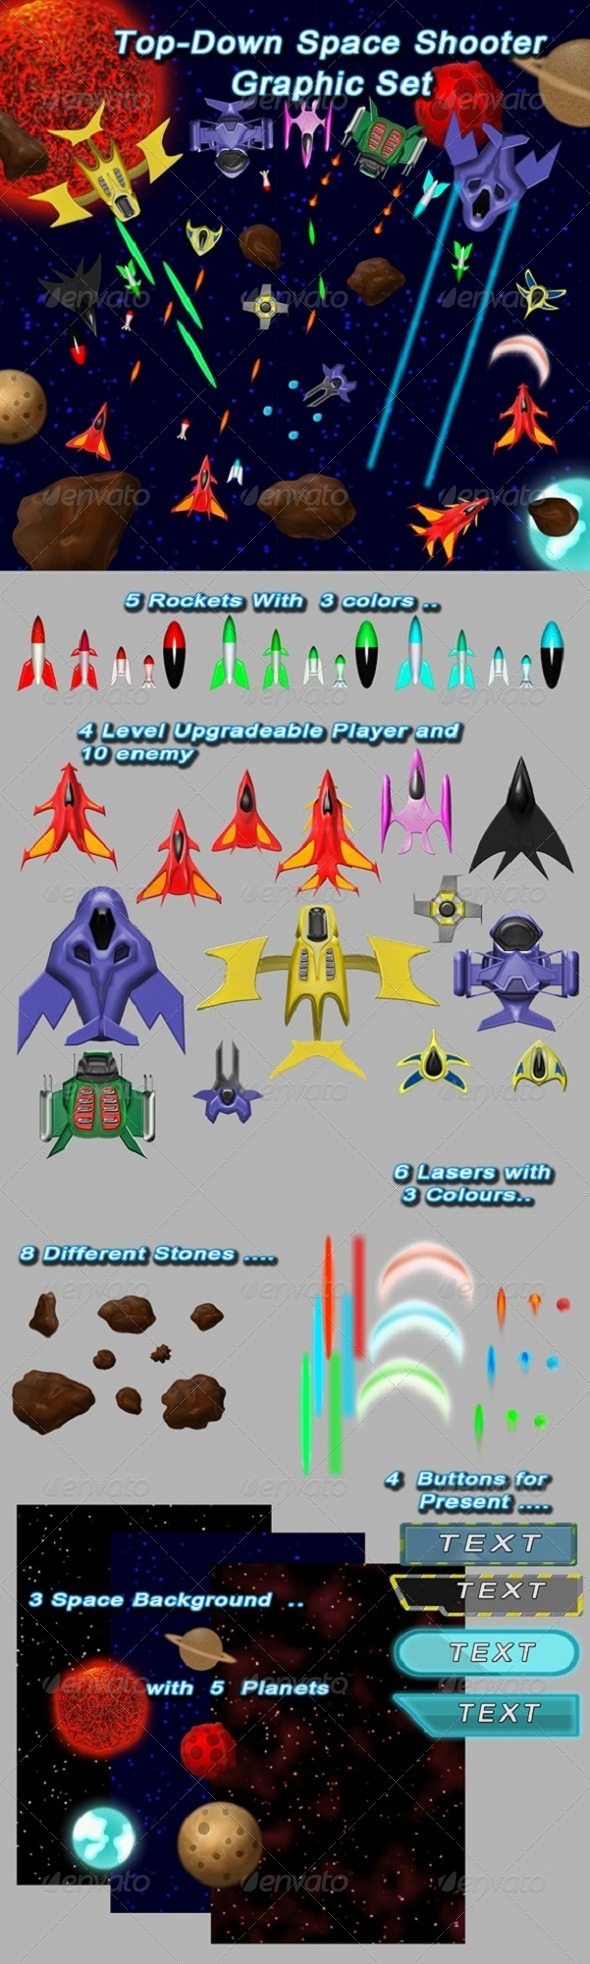 GraphicRiver Top-Down Space Shooter Graphic Set 6460250